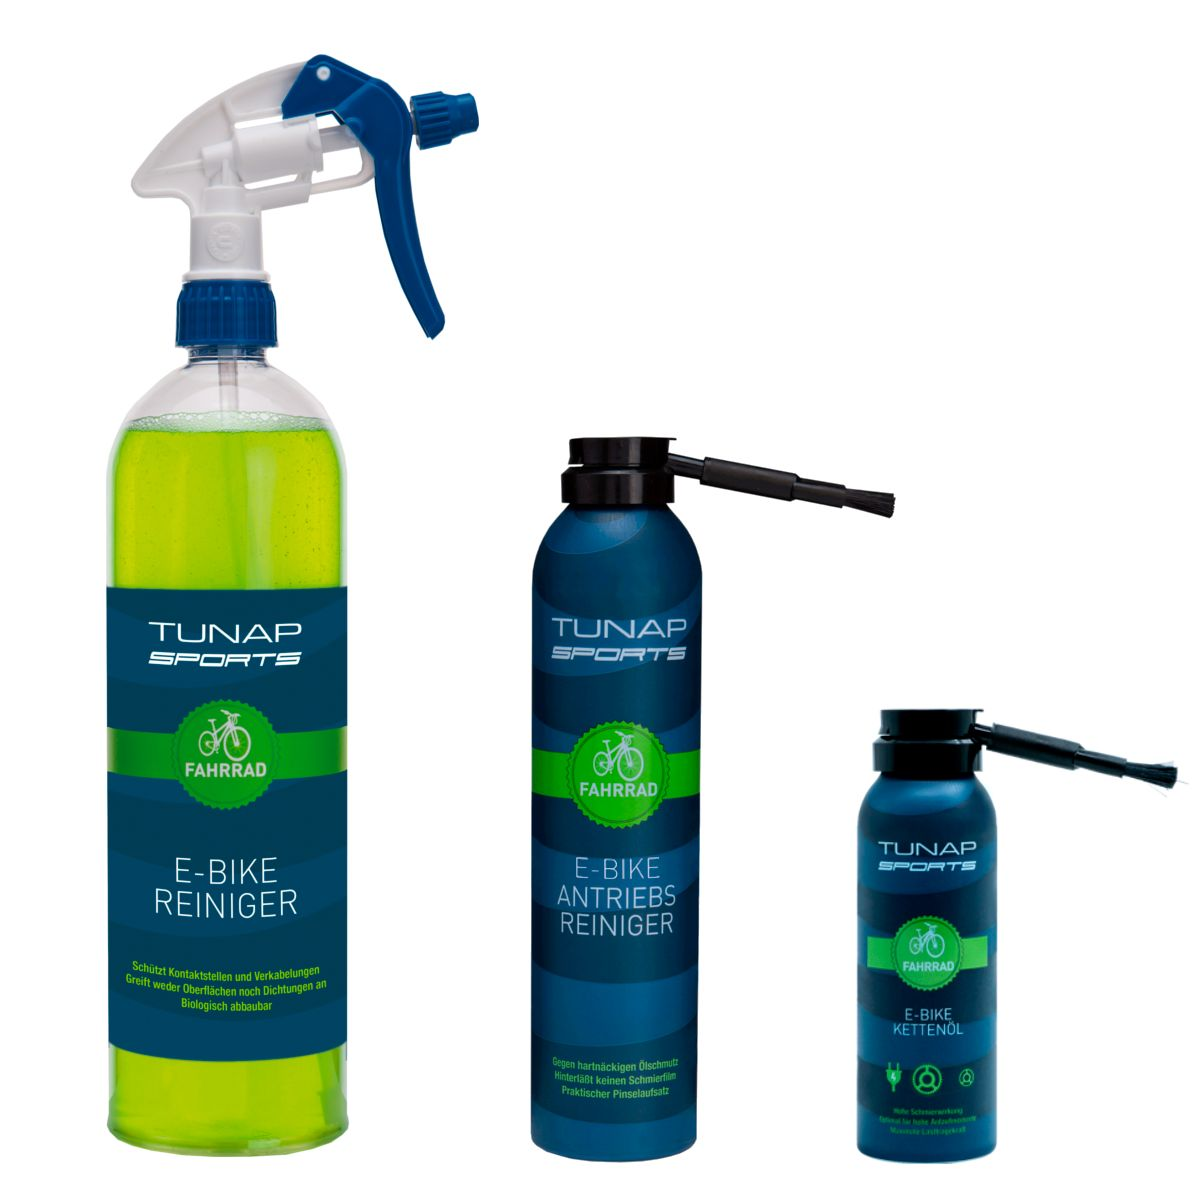 Tunap Sports E-bike cleaning and care kit cleaner, drivetrain cleaner and chain lube | Rengøring og smøremidler